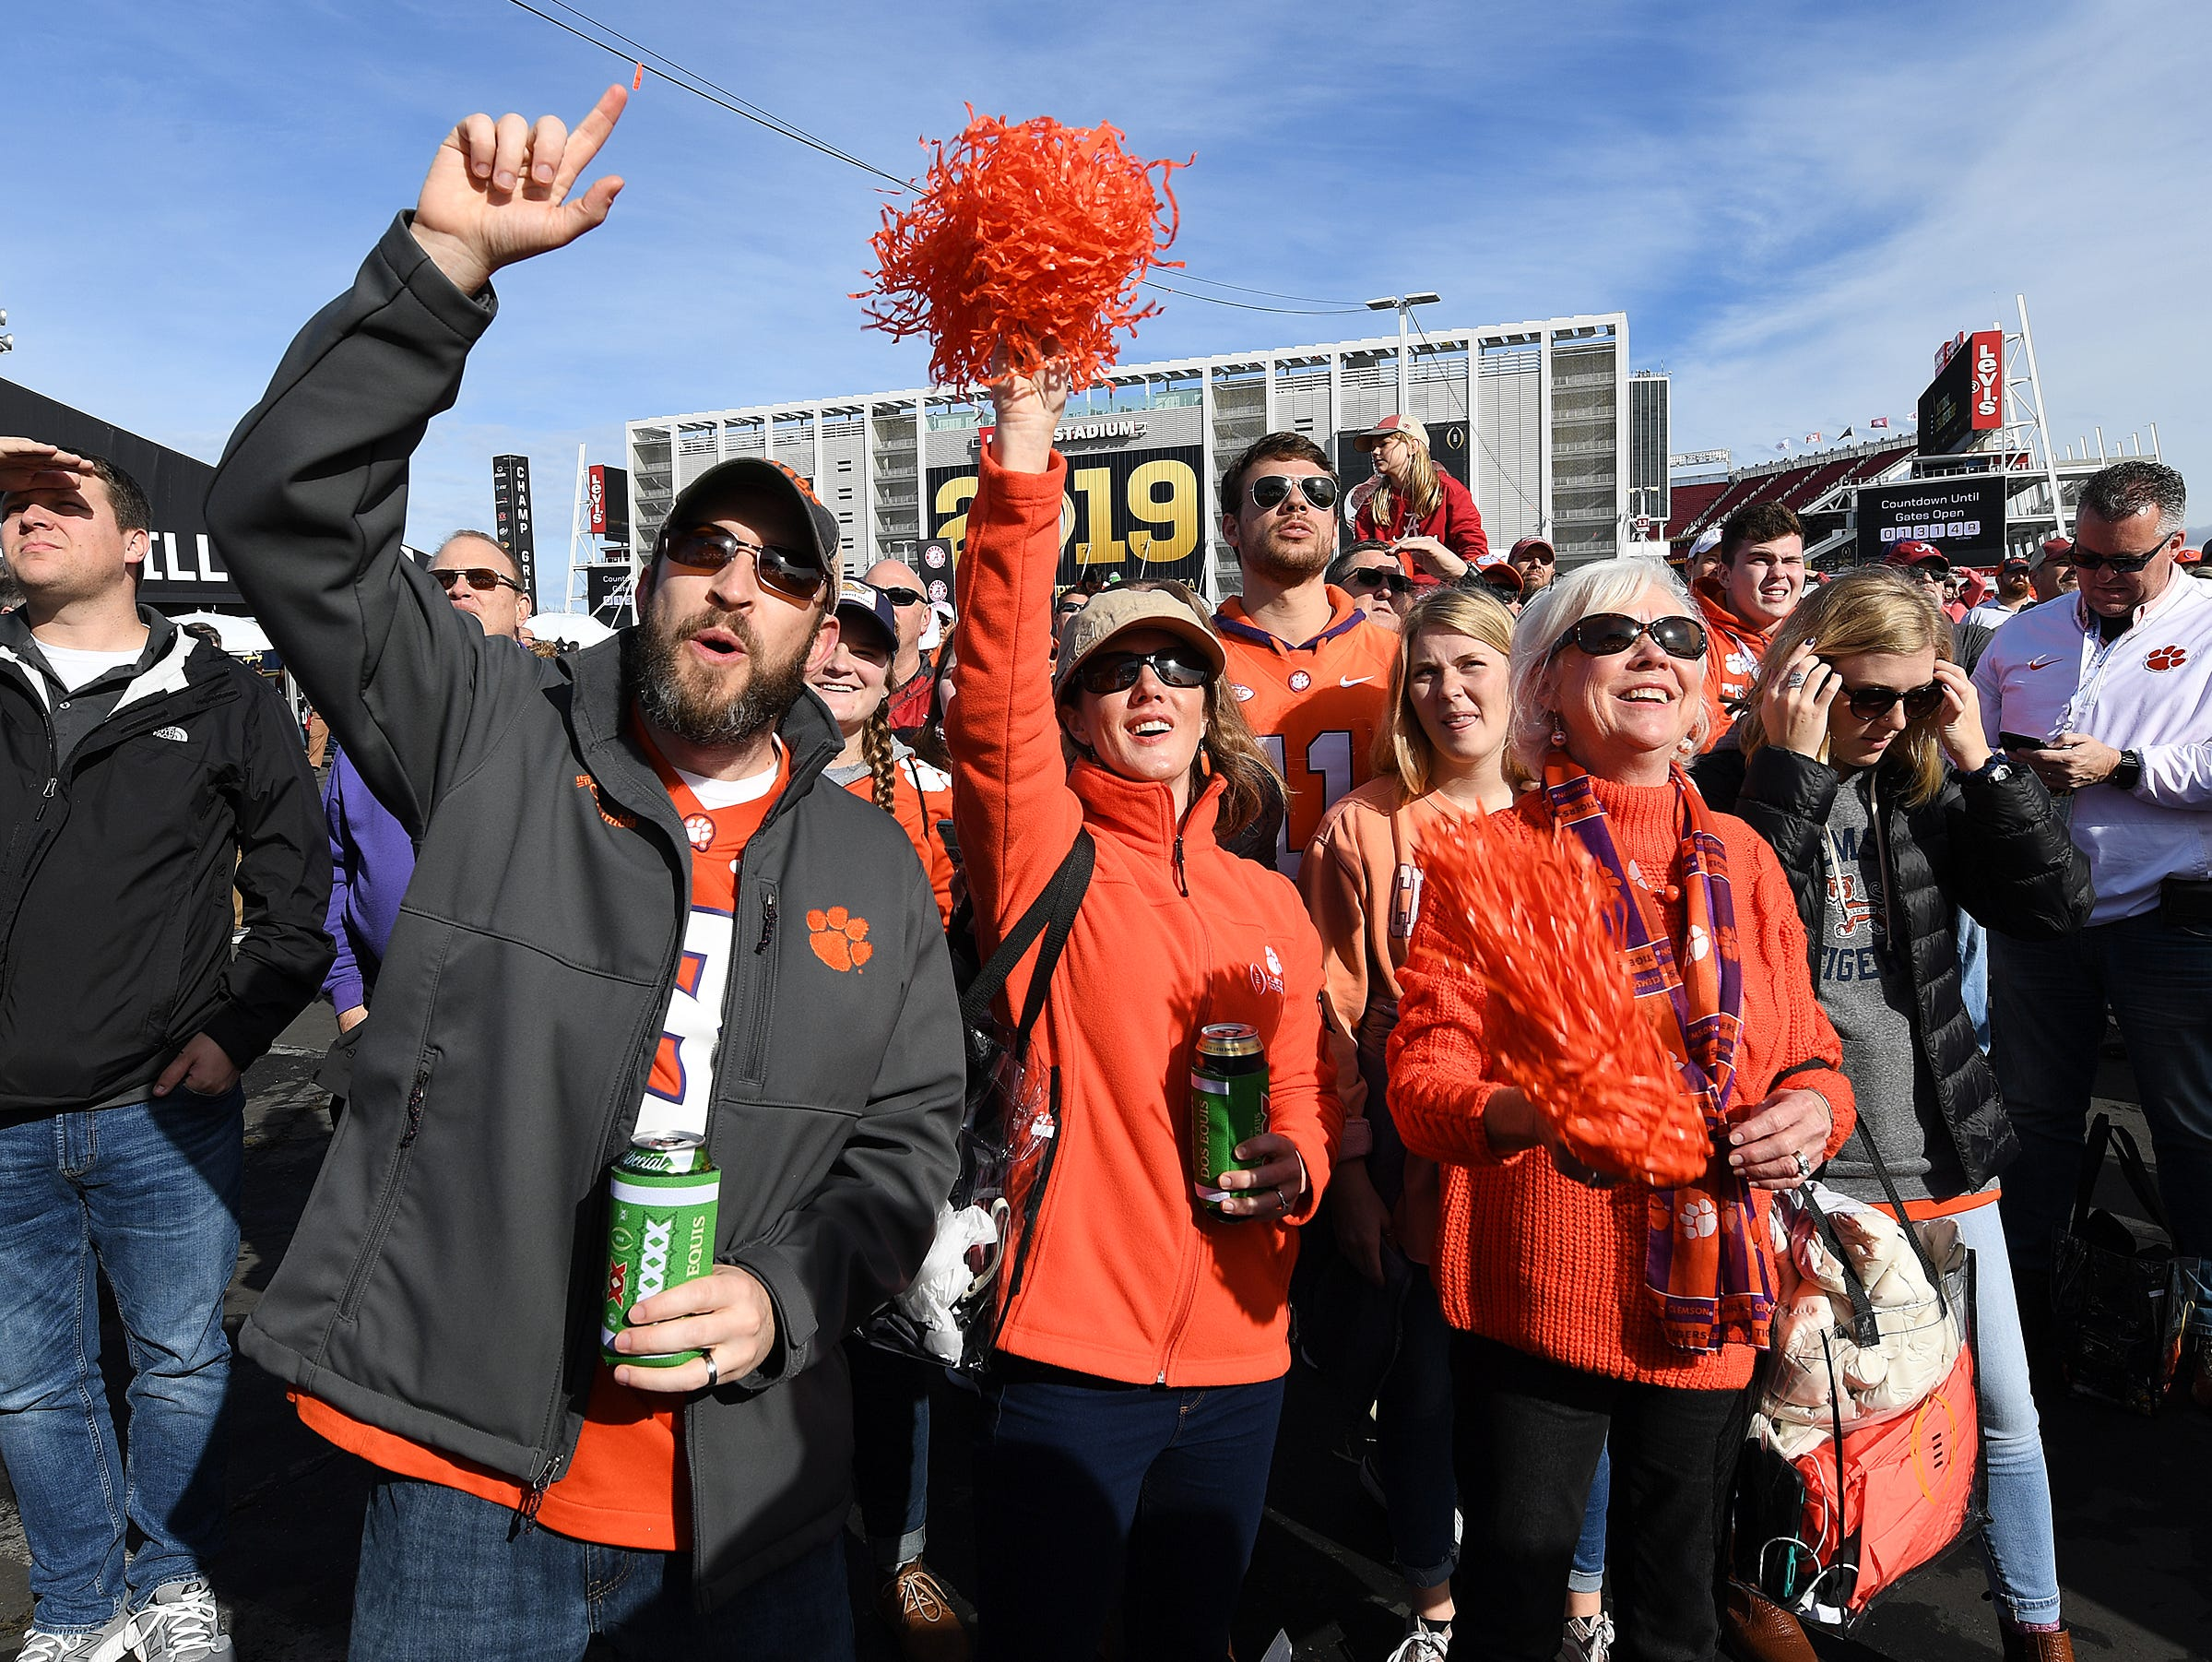 Brandon and Chisty Spencer, left, and Darlene Altman cheer during the College Football Championship Playoff Tailgate outside Levi's Stadium in Santa Clara, CA Monday, January 7, 2019.